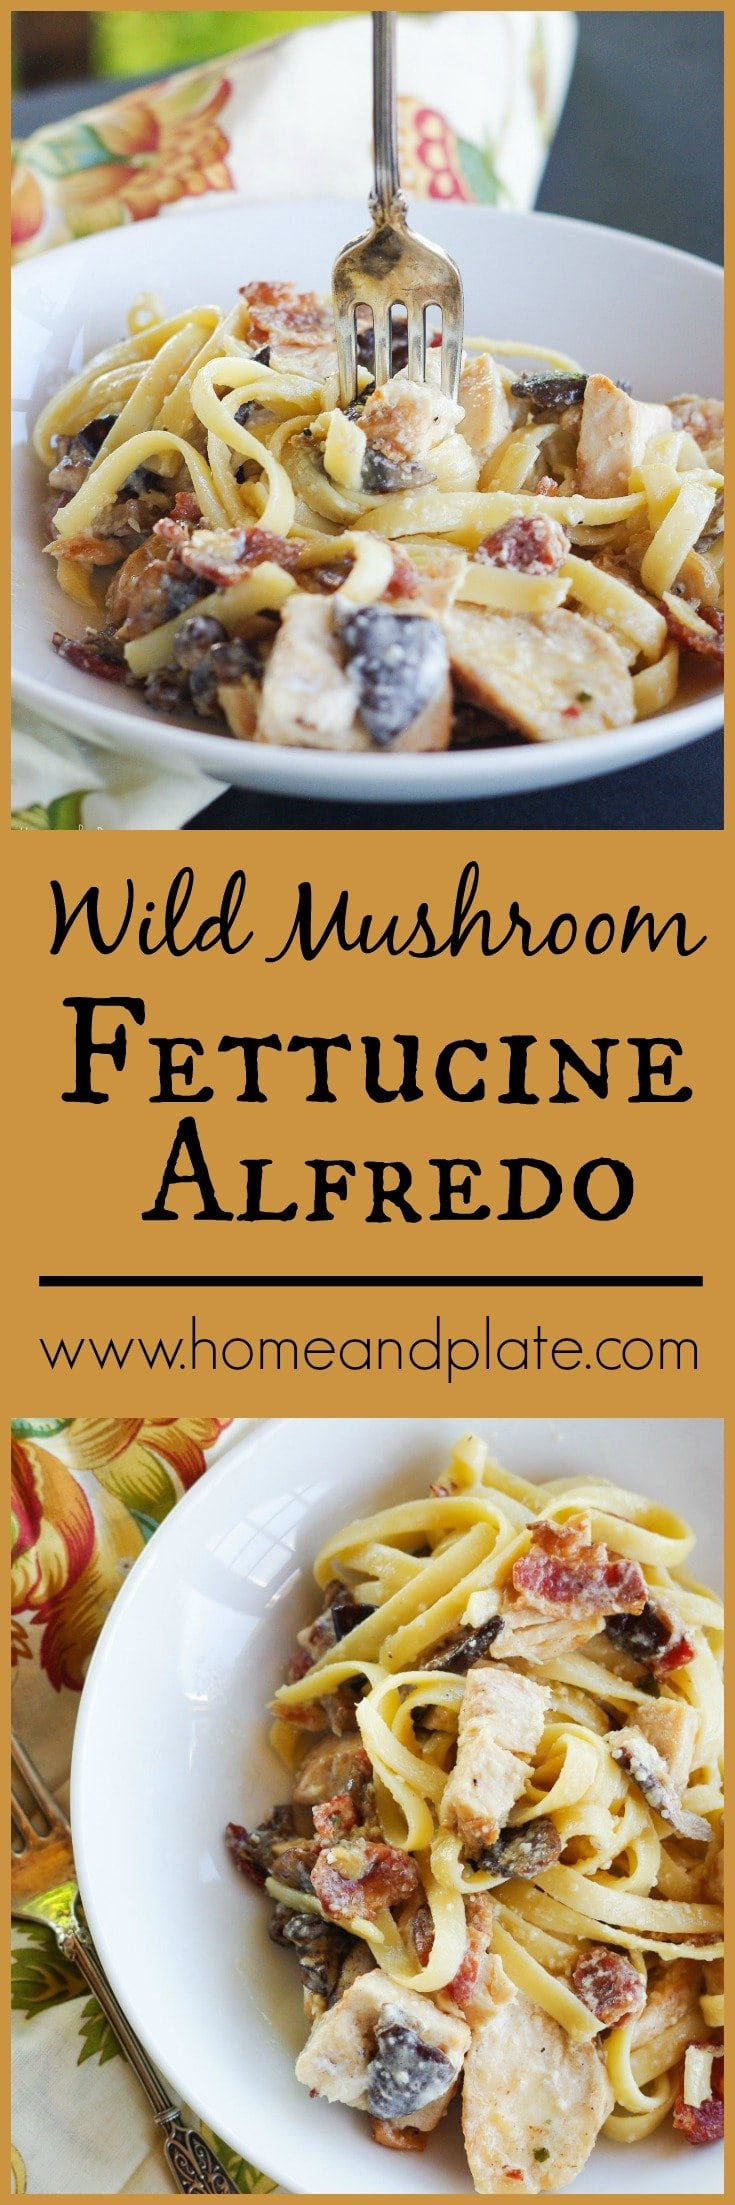 Chicken & Wild Mushroom Fettuccine Alfredo | www.homeandplate | If you have 30 minutes, you can whip up a restaurant-worthy dinner of creamy fettuccine alfredo with hearty mushrooms and juicy chicken. And everything is better with bacon. #FamilyPastaTime #ad